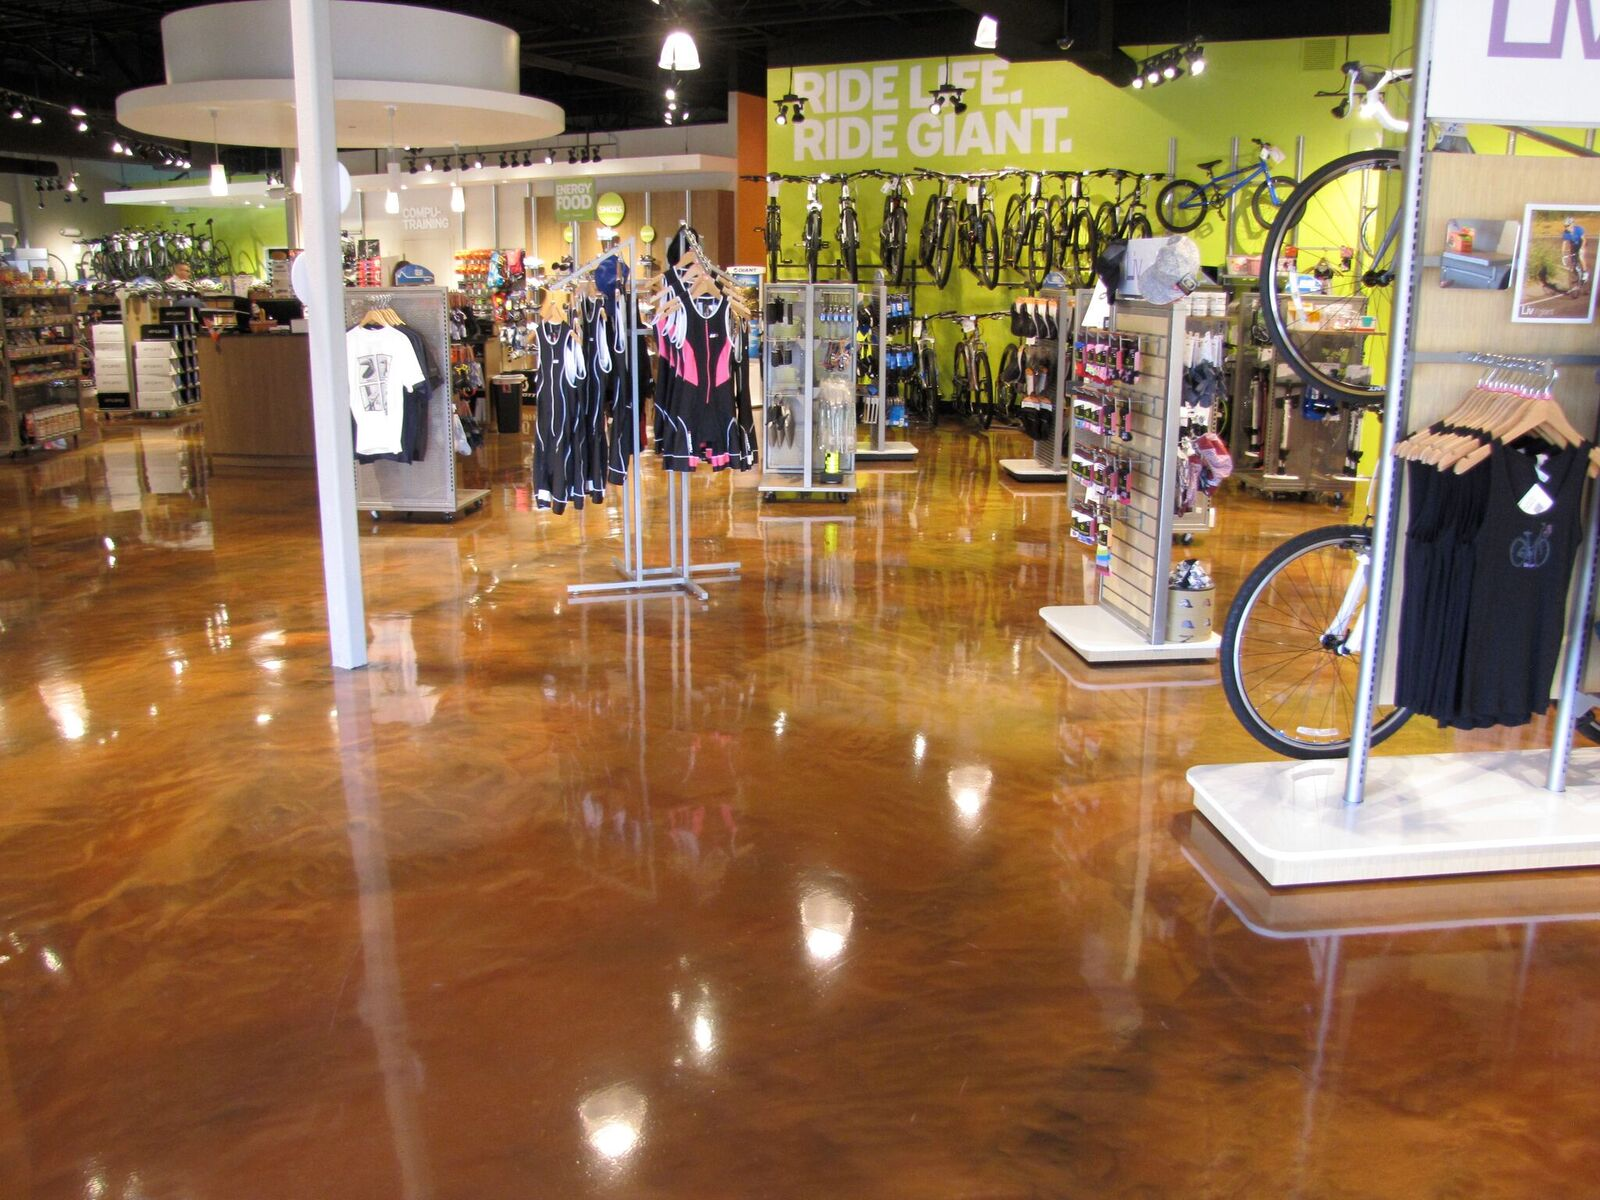 Blackrock seamless floors that shine